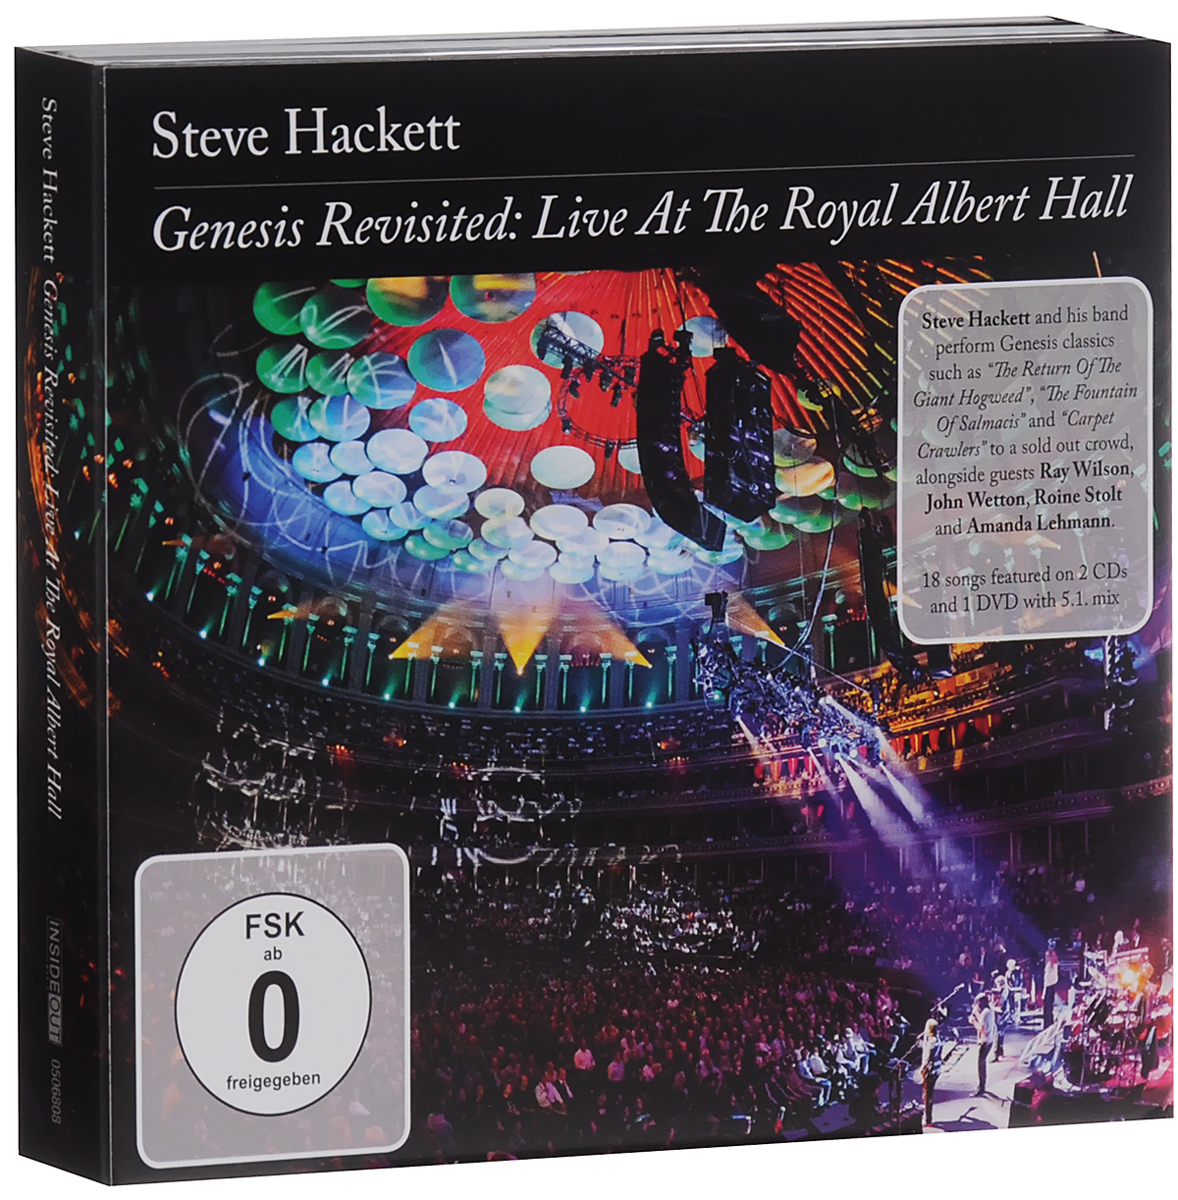 Стив Хэкетт Steve Hackett. Genesis Revisited. Live At The Royal Albert Hall (2 CD + DVD) pantera pantera reinventing hell the best of pantera cd dvd